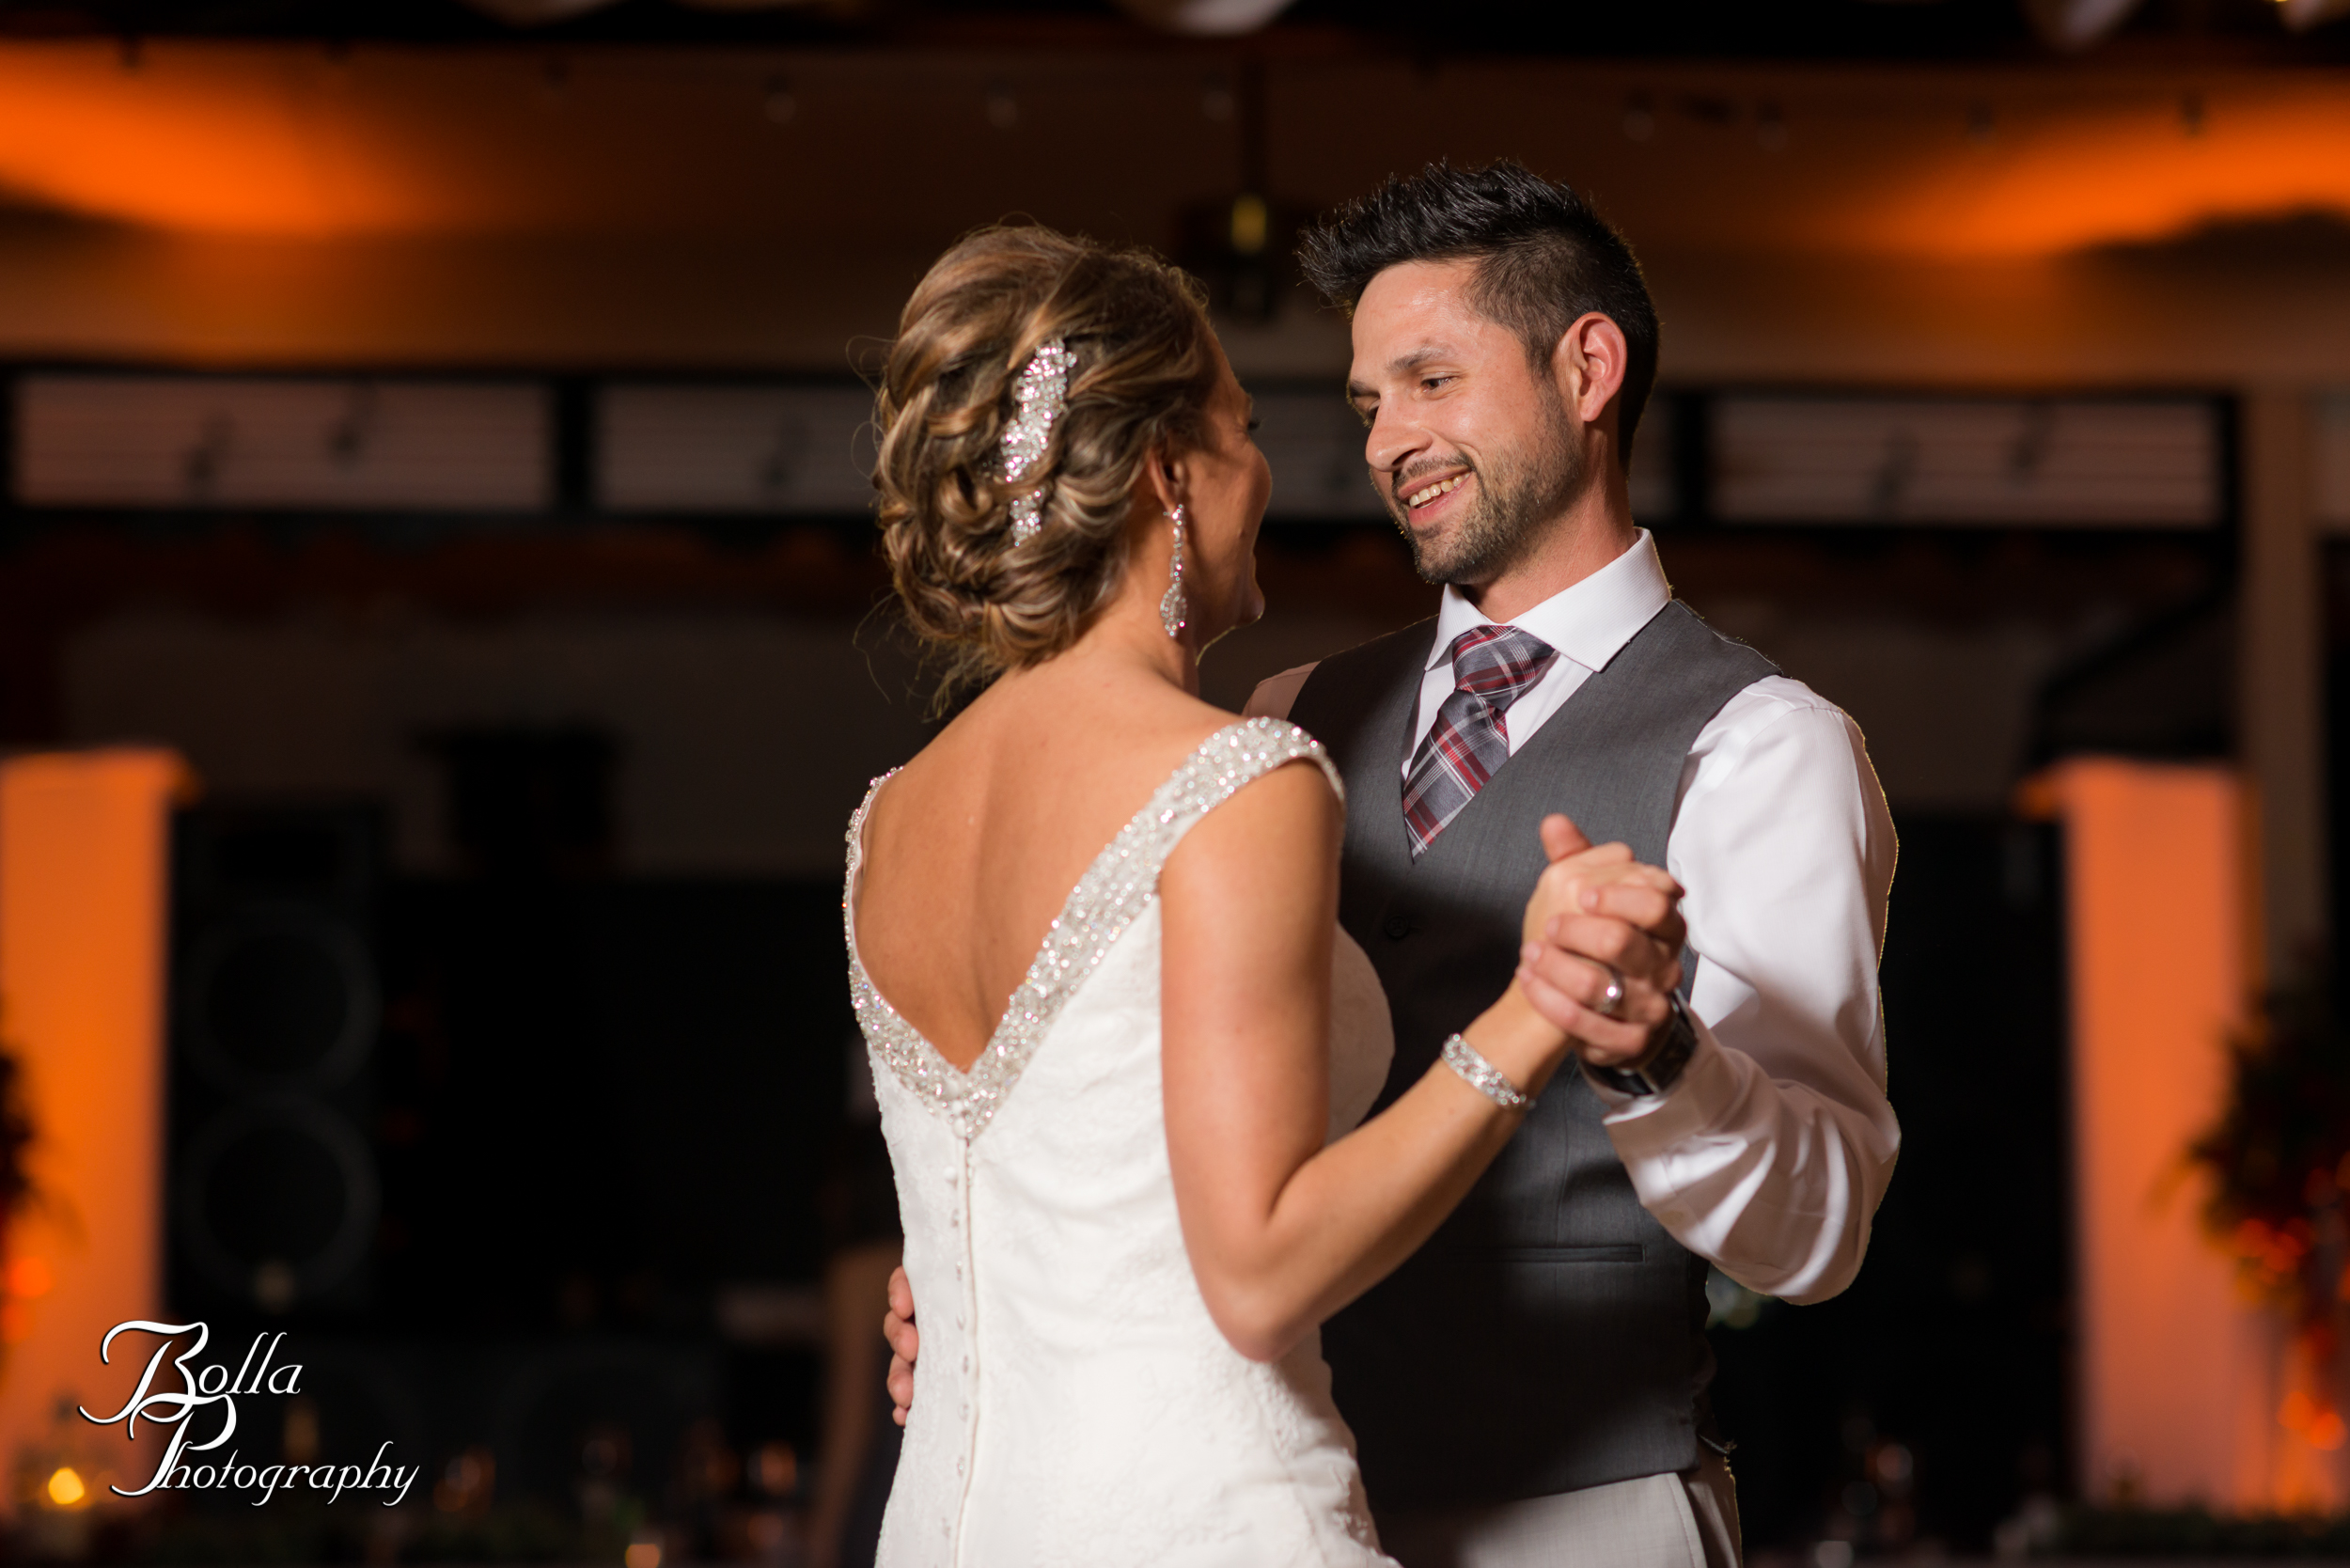 Bolla_photography_edwardsville_wedding_photographer_st_louis_weddings_highland_Allen_Warren_winter_red-0403.jpg